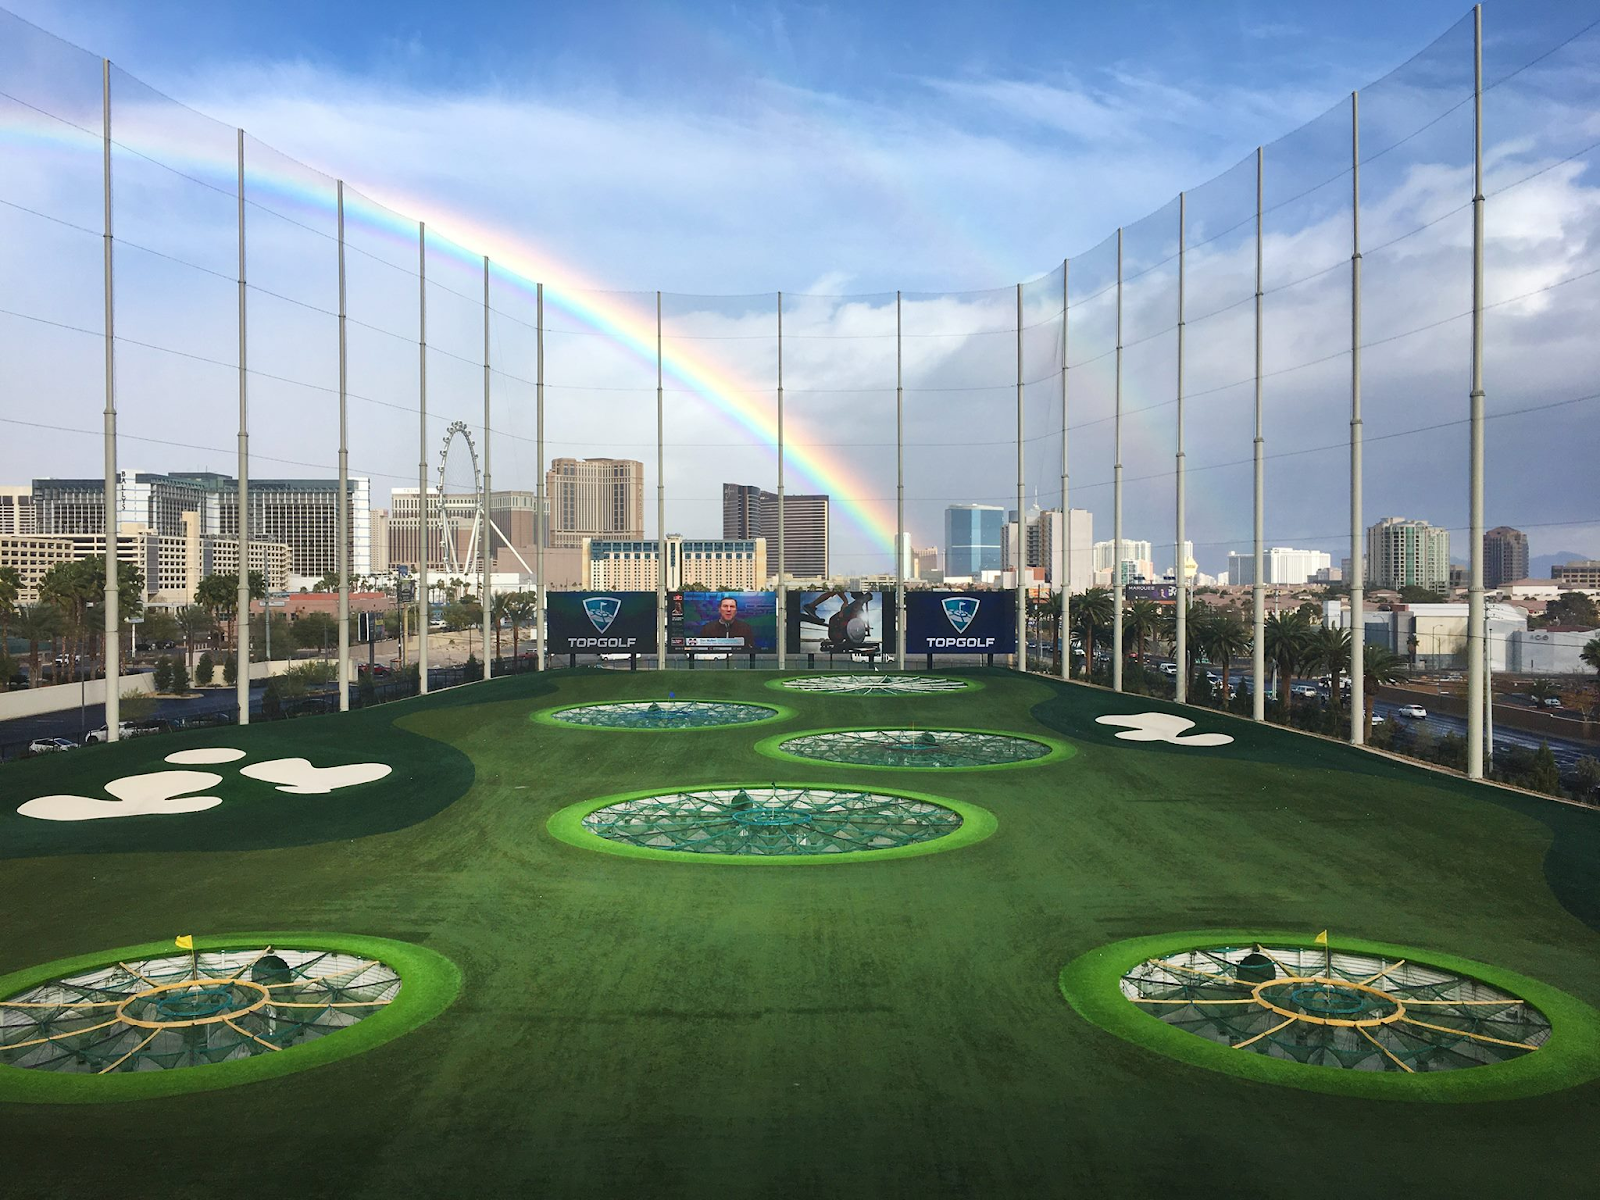 Top Golf with rainbow in the background in the sky